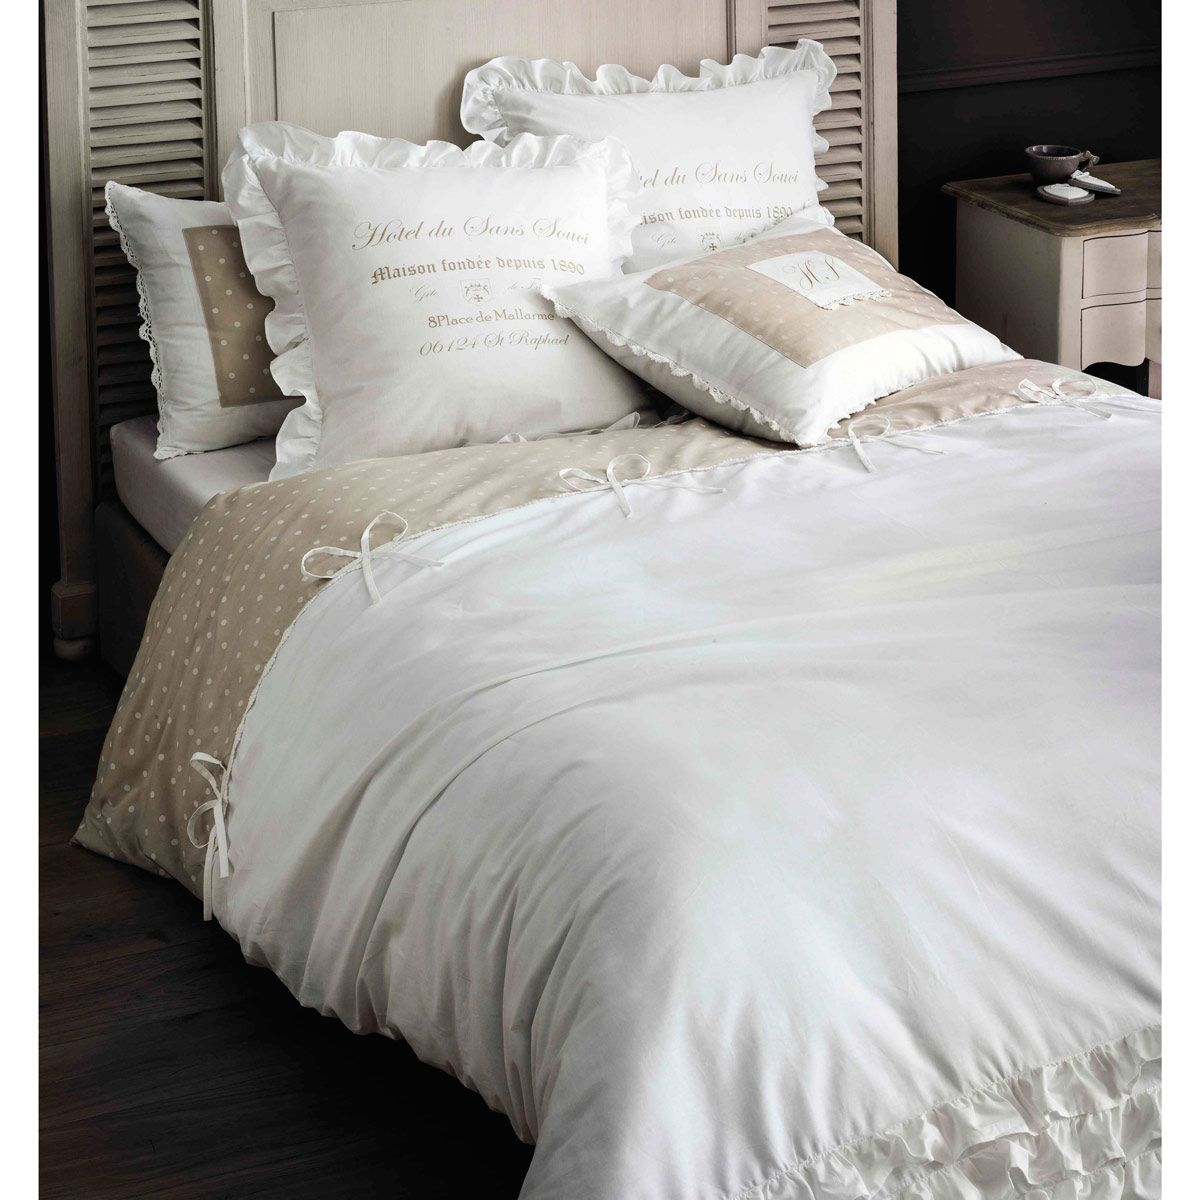 parure de lit en coton blanche 220 x 240 cm parure. Black Bedroom Furniture Sets. Home Design Ideas